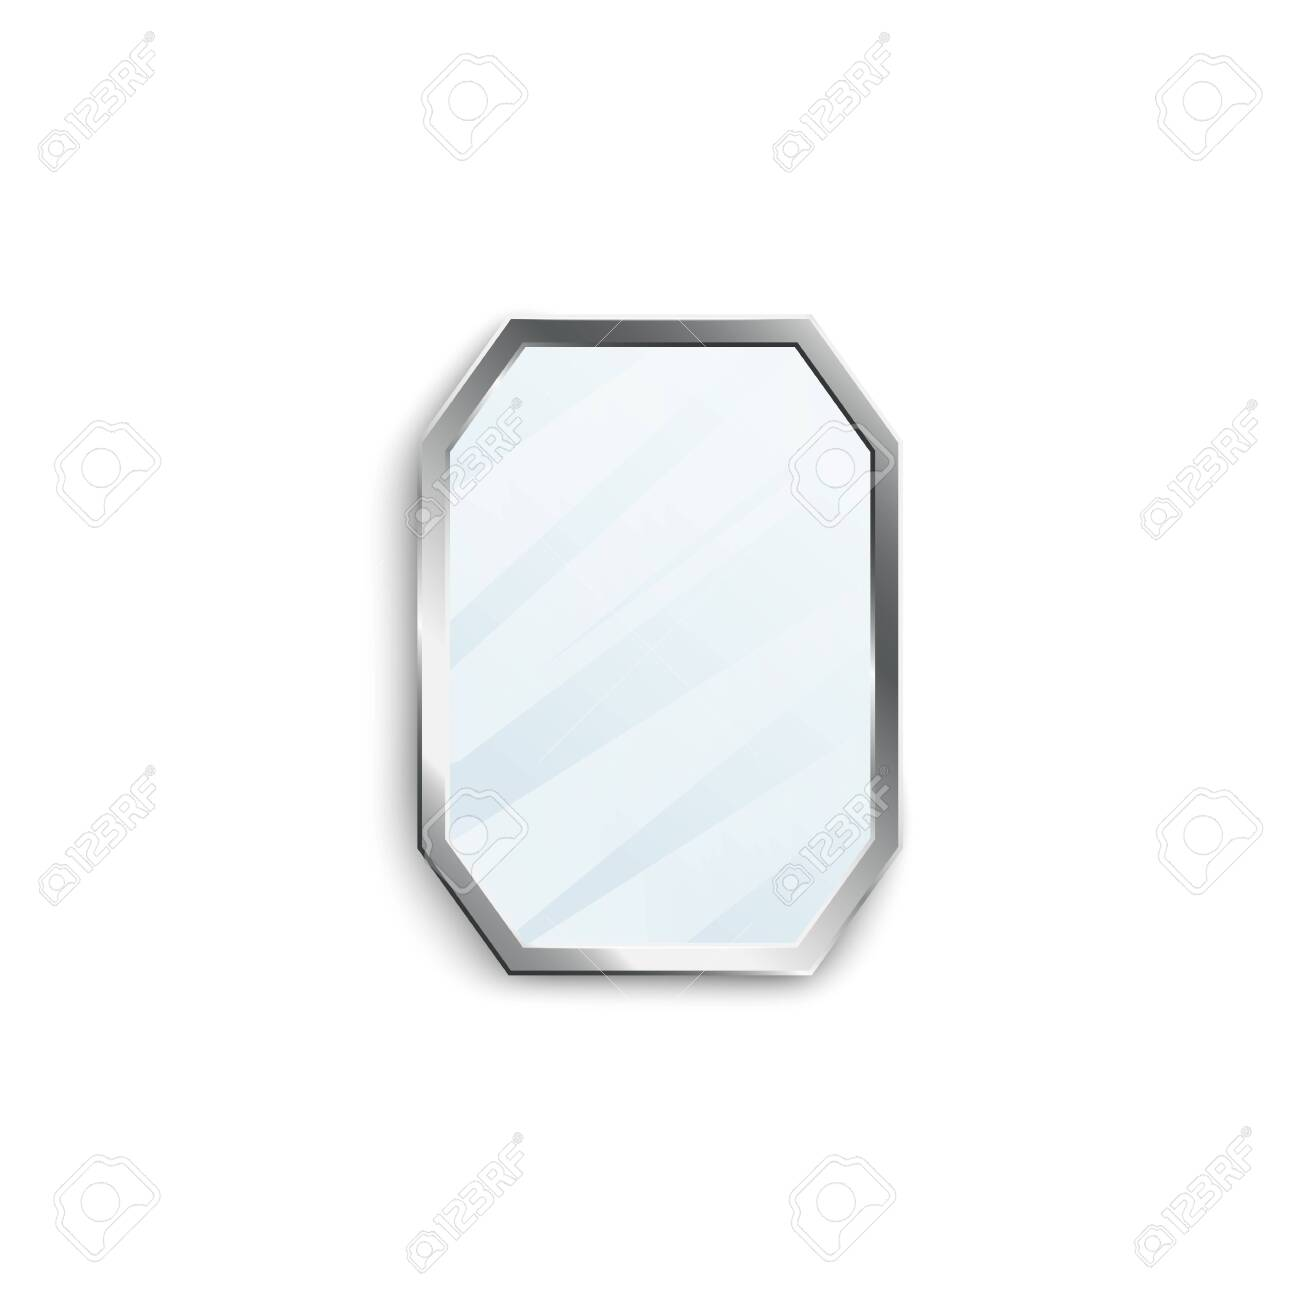 Realistic mirror with silver hexagon frame isolated on white background. Classic interior decoration object with reflective glossy glass texture - vector illustration. - 130223269